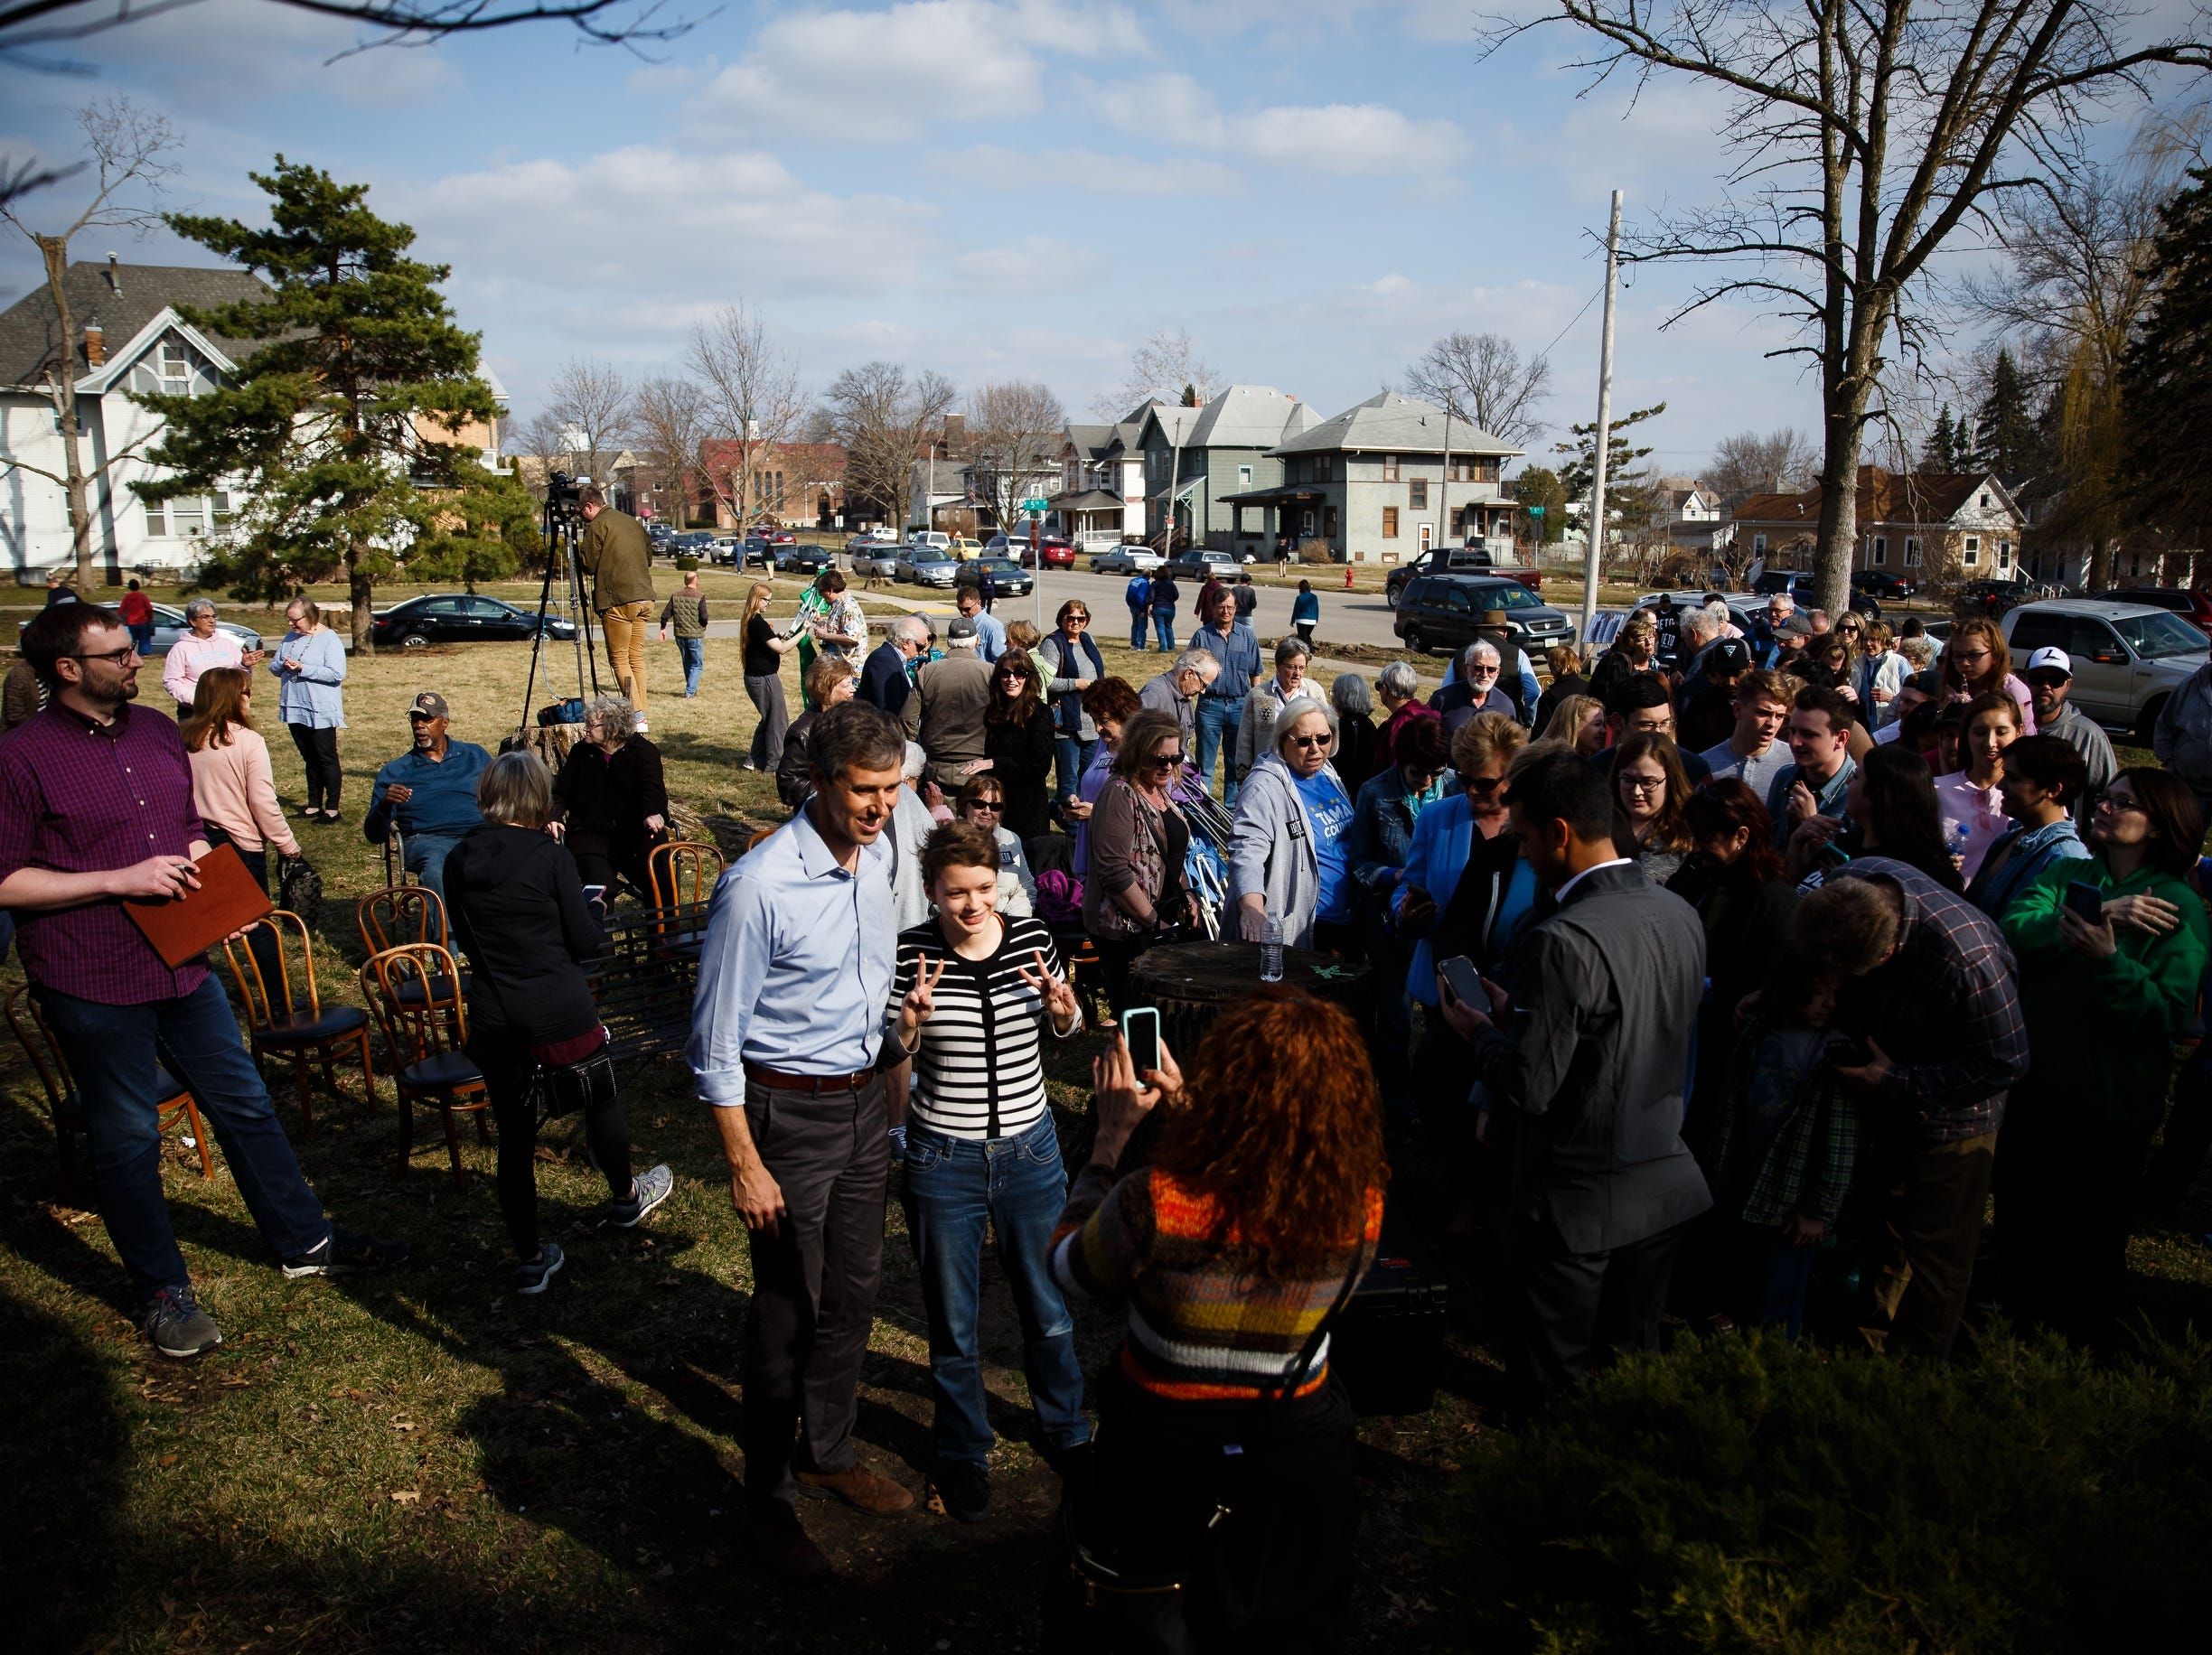 2020 Democratic presidential candidate and former Texas Representative Beto O'Rourke takes photos with people after speaking in Marshalltown during a swing though Iowa on Friday, April 5, 2019, in Marshalltown.